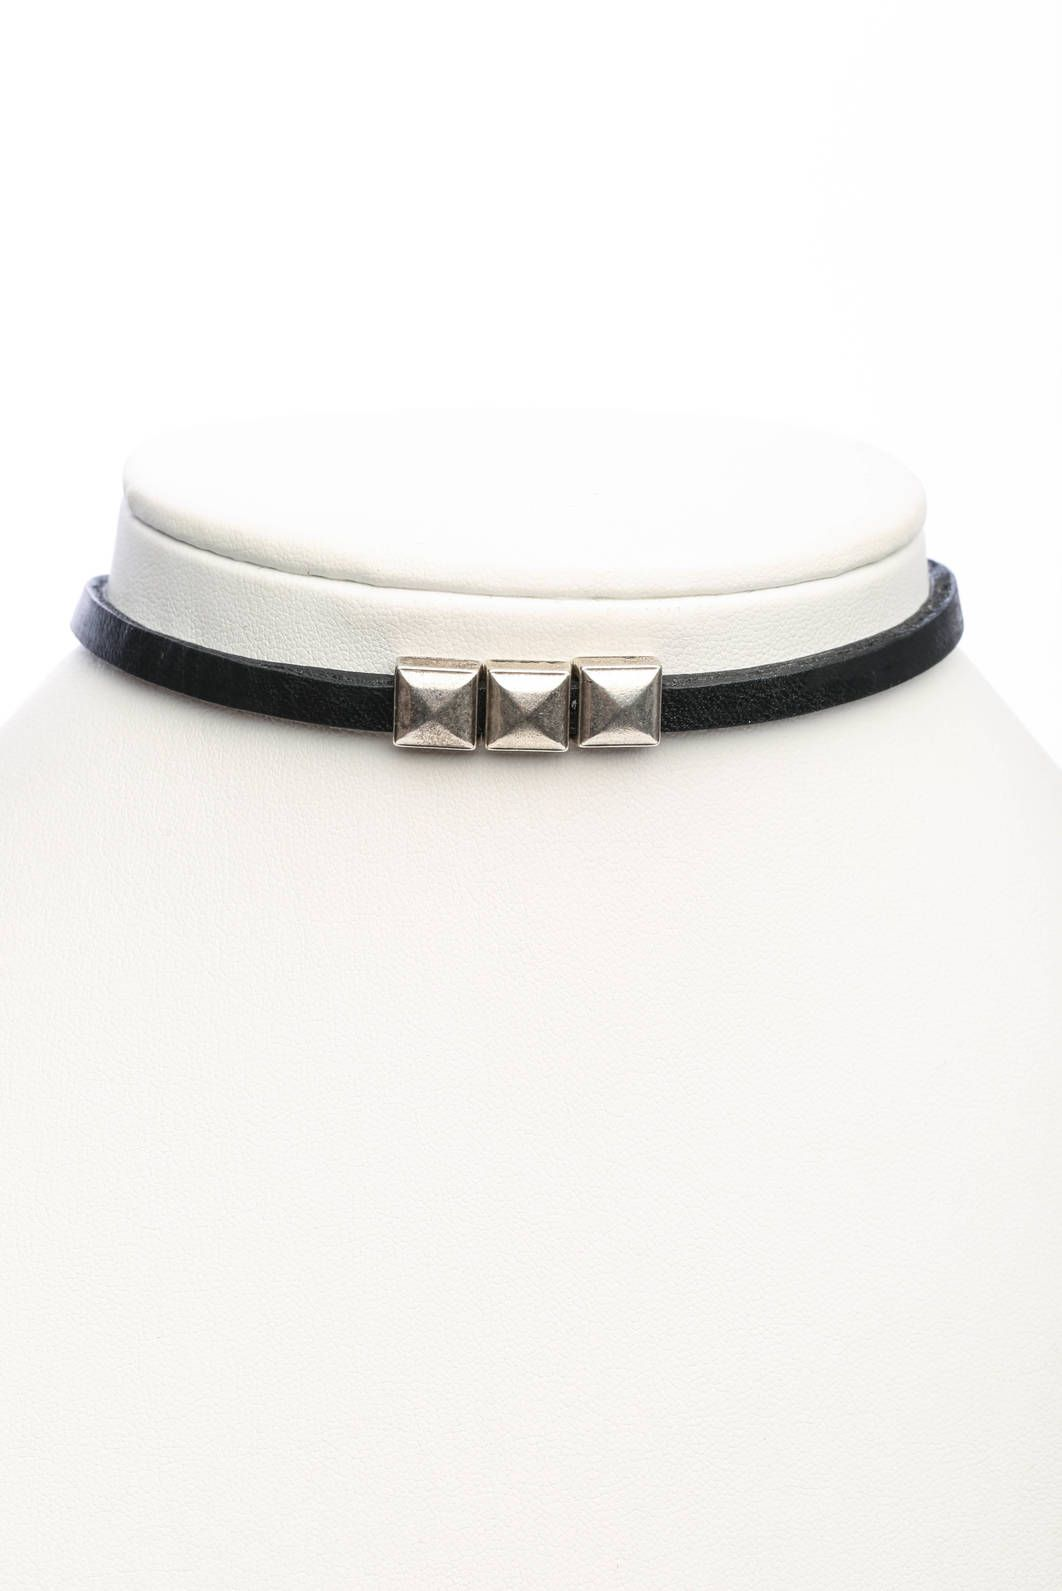 Brave Leather 3 Stud Choker Necklace in BLACK